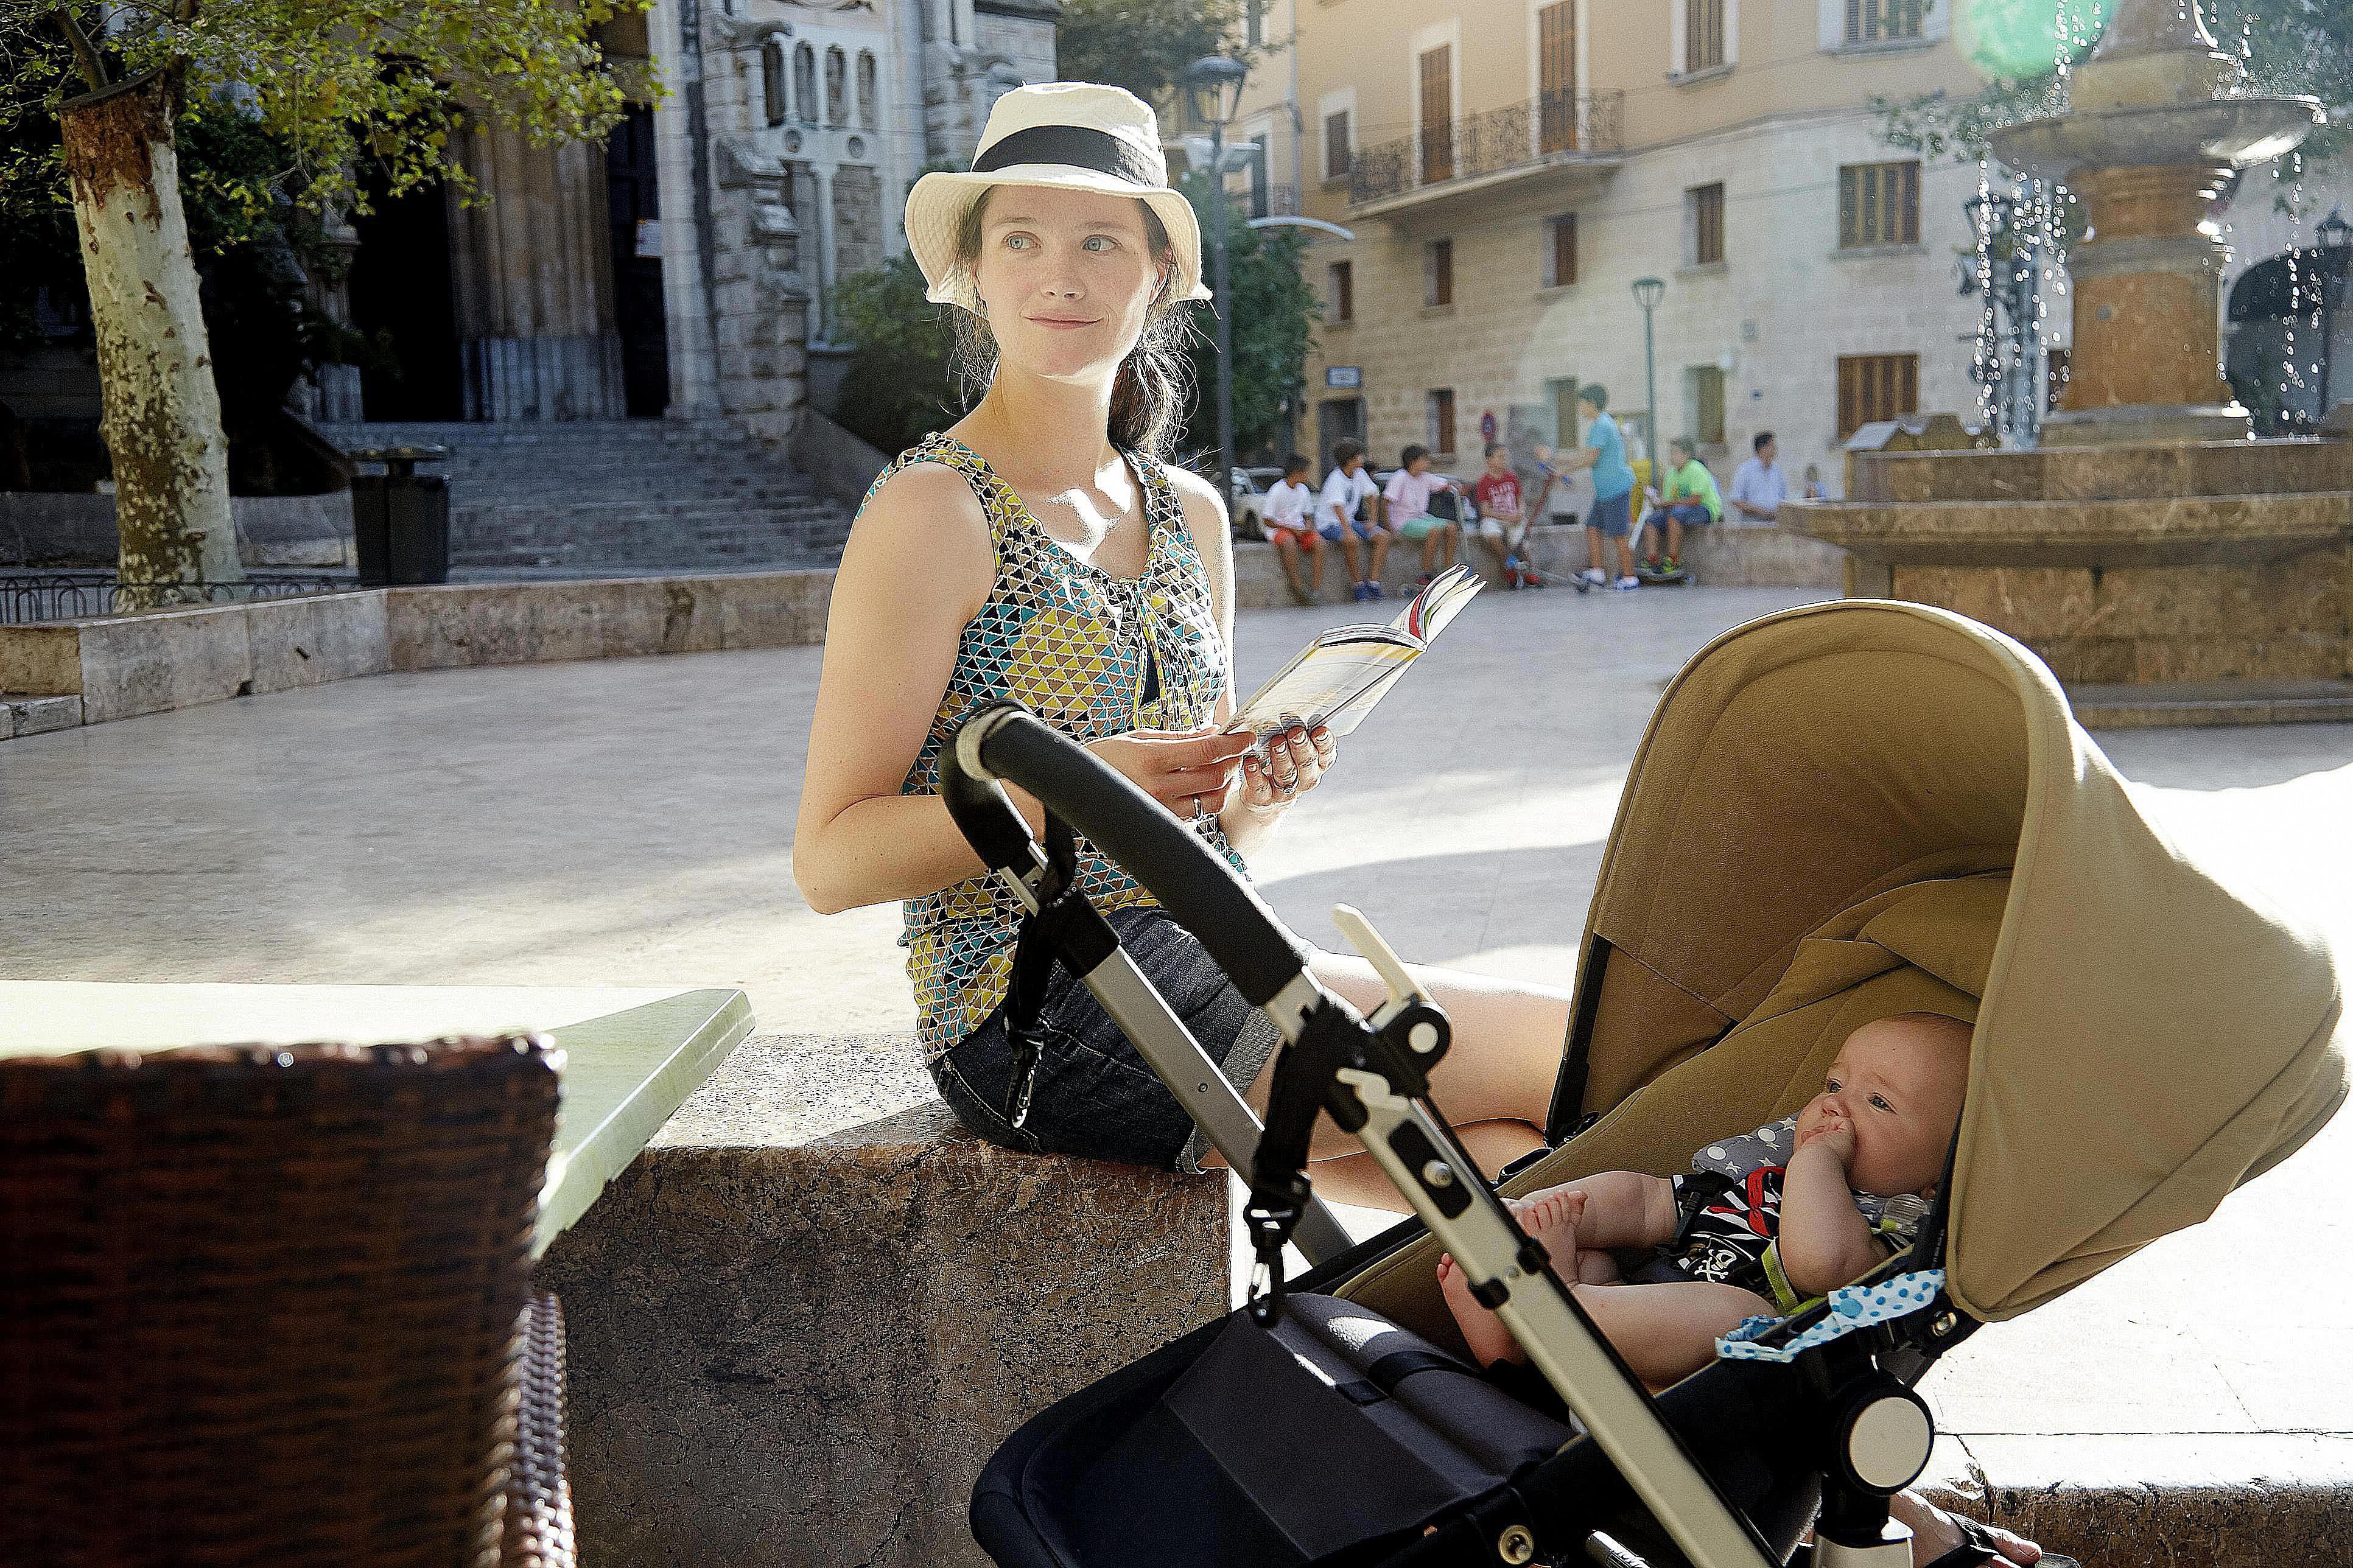 full size strollers